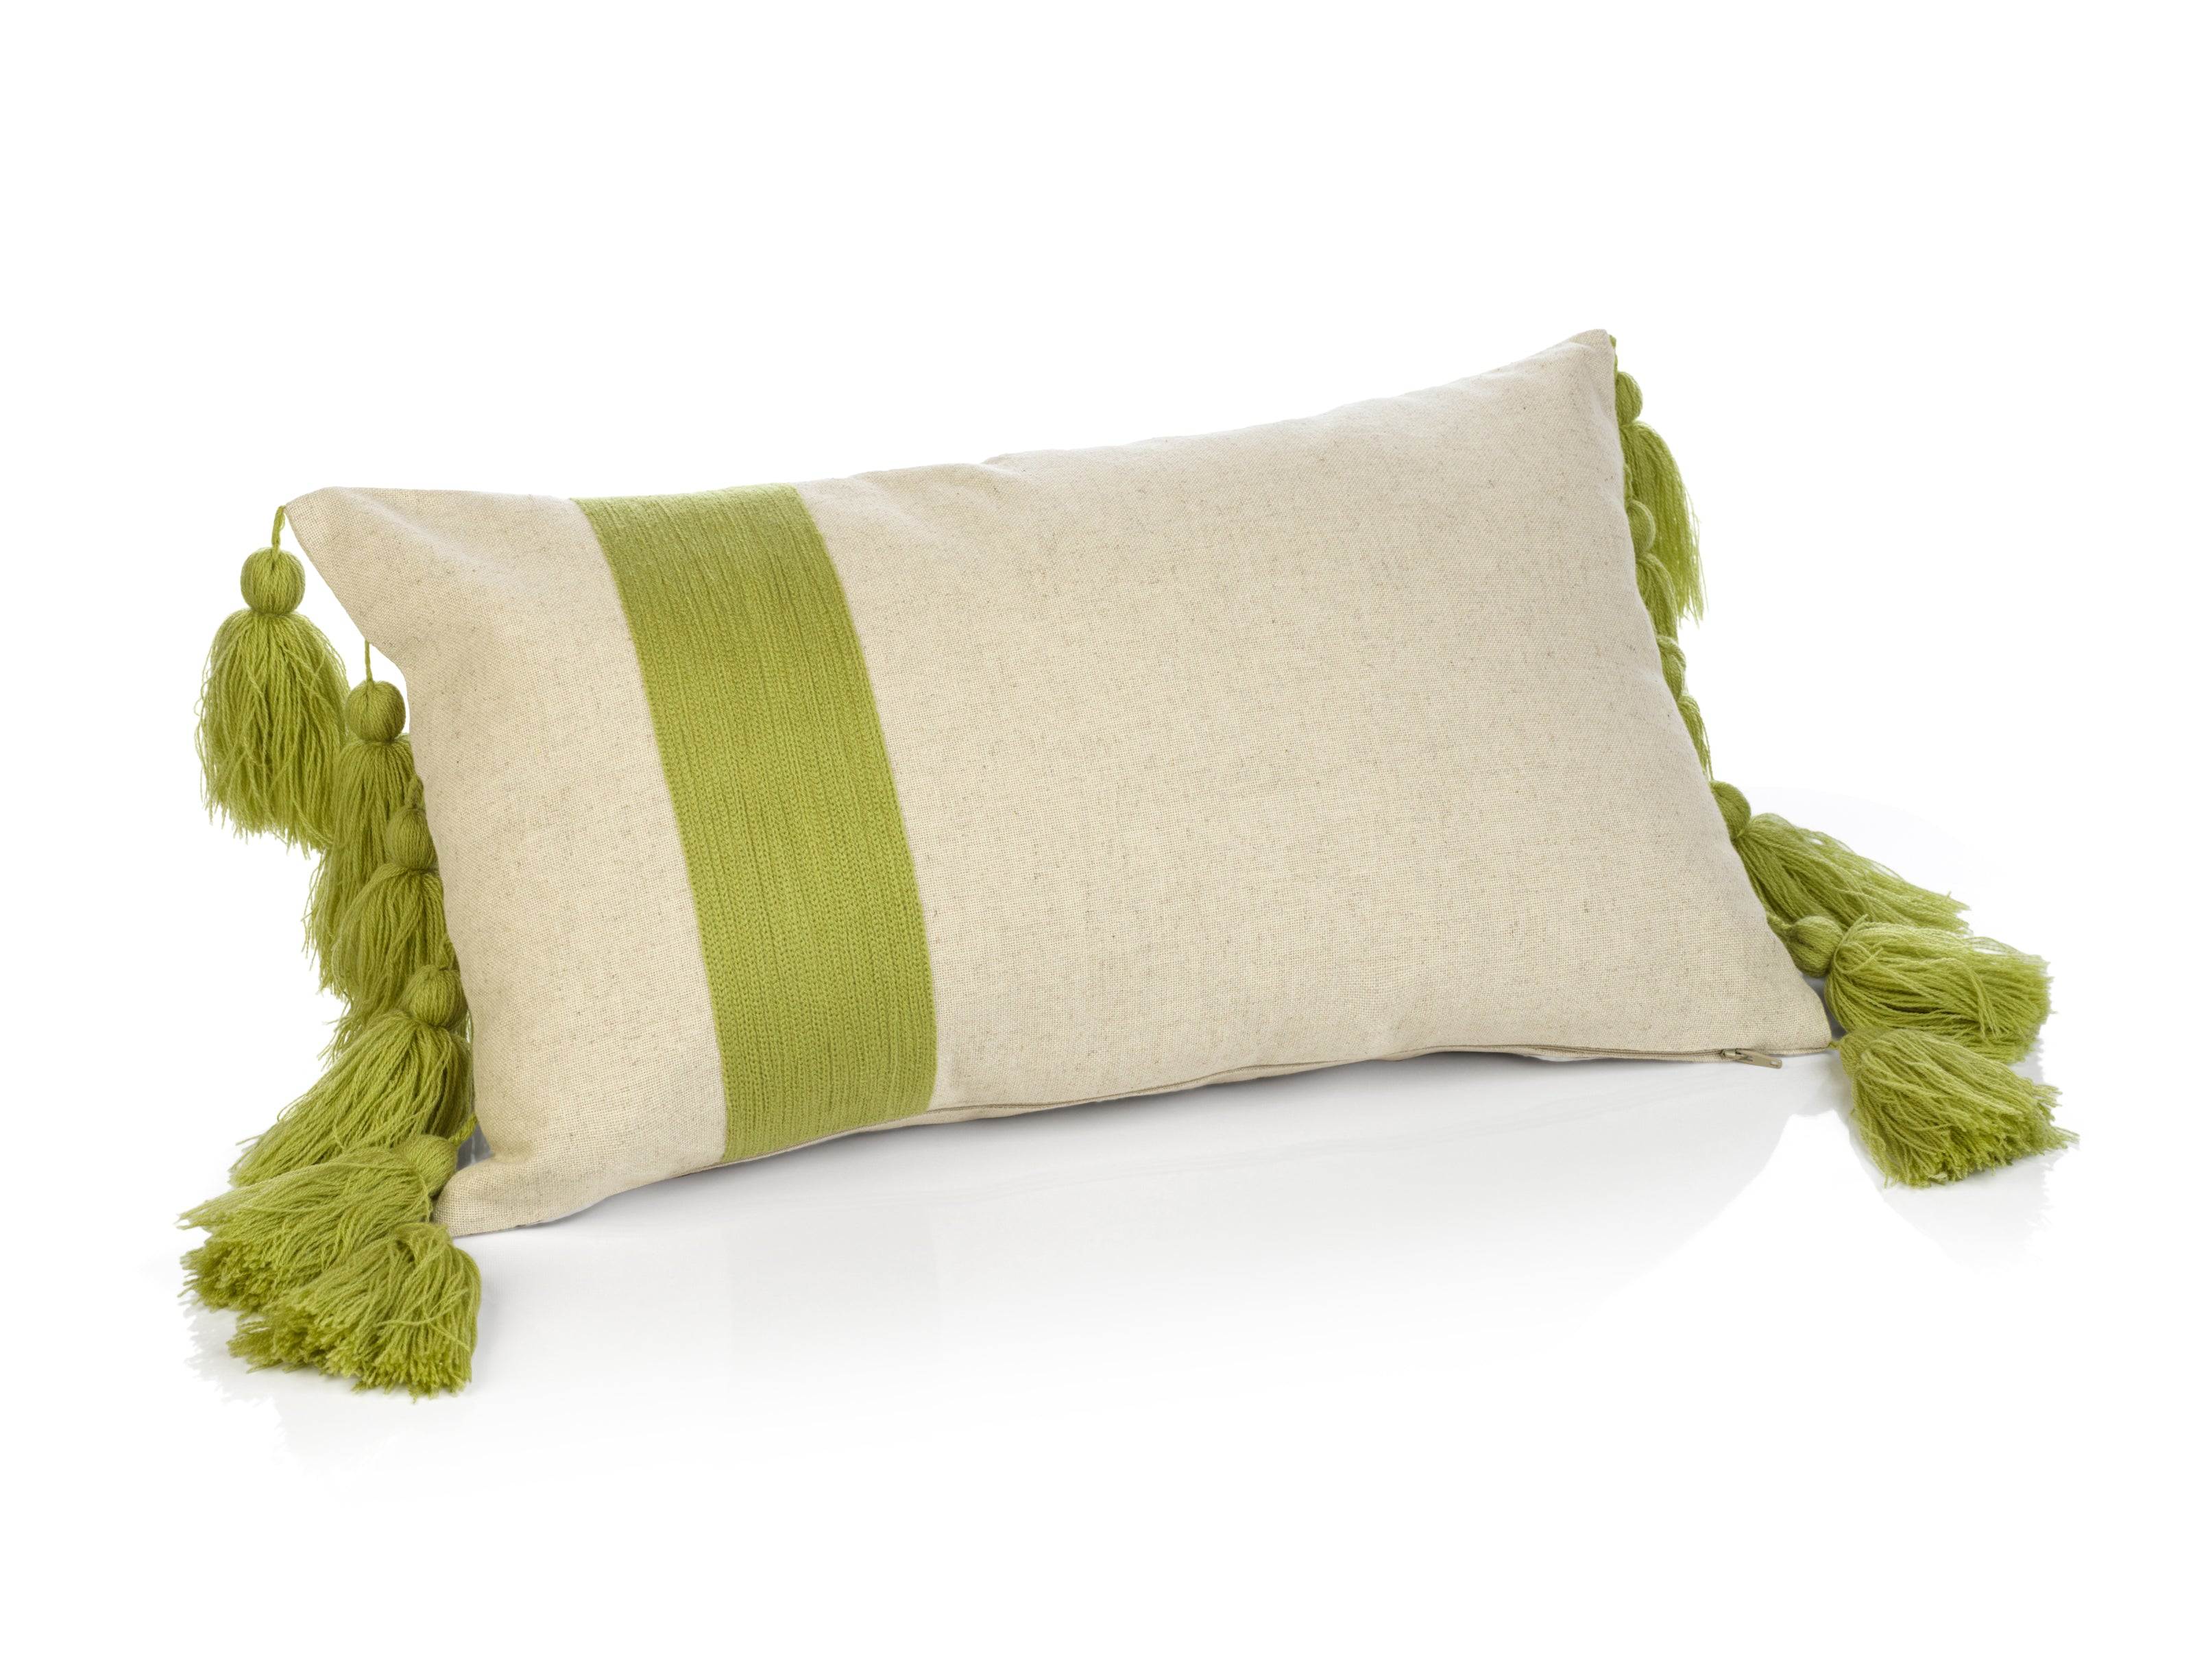 Polignano Embroidered Throw Pillow w/Tassels - Palm - CARLYLE AVENUE